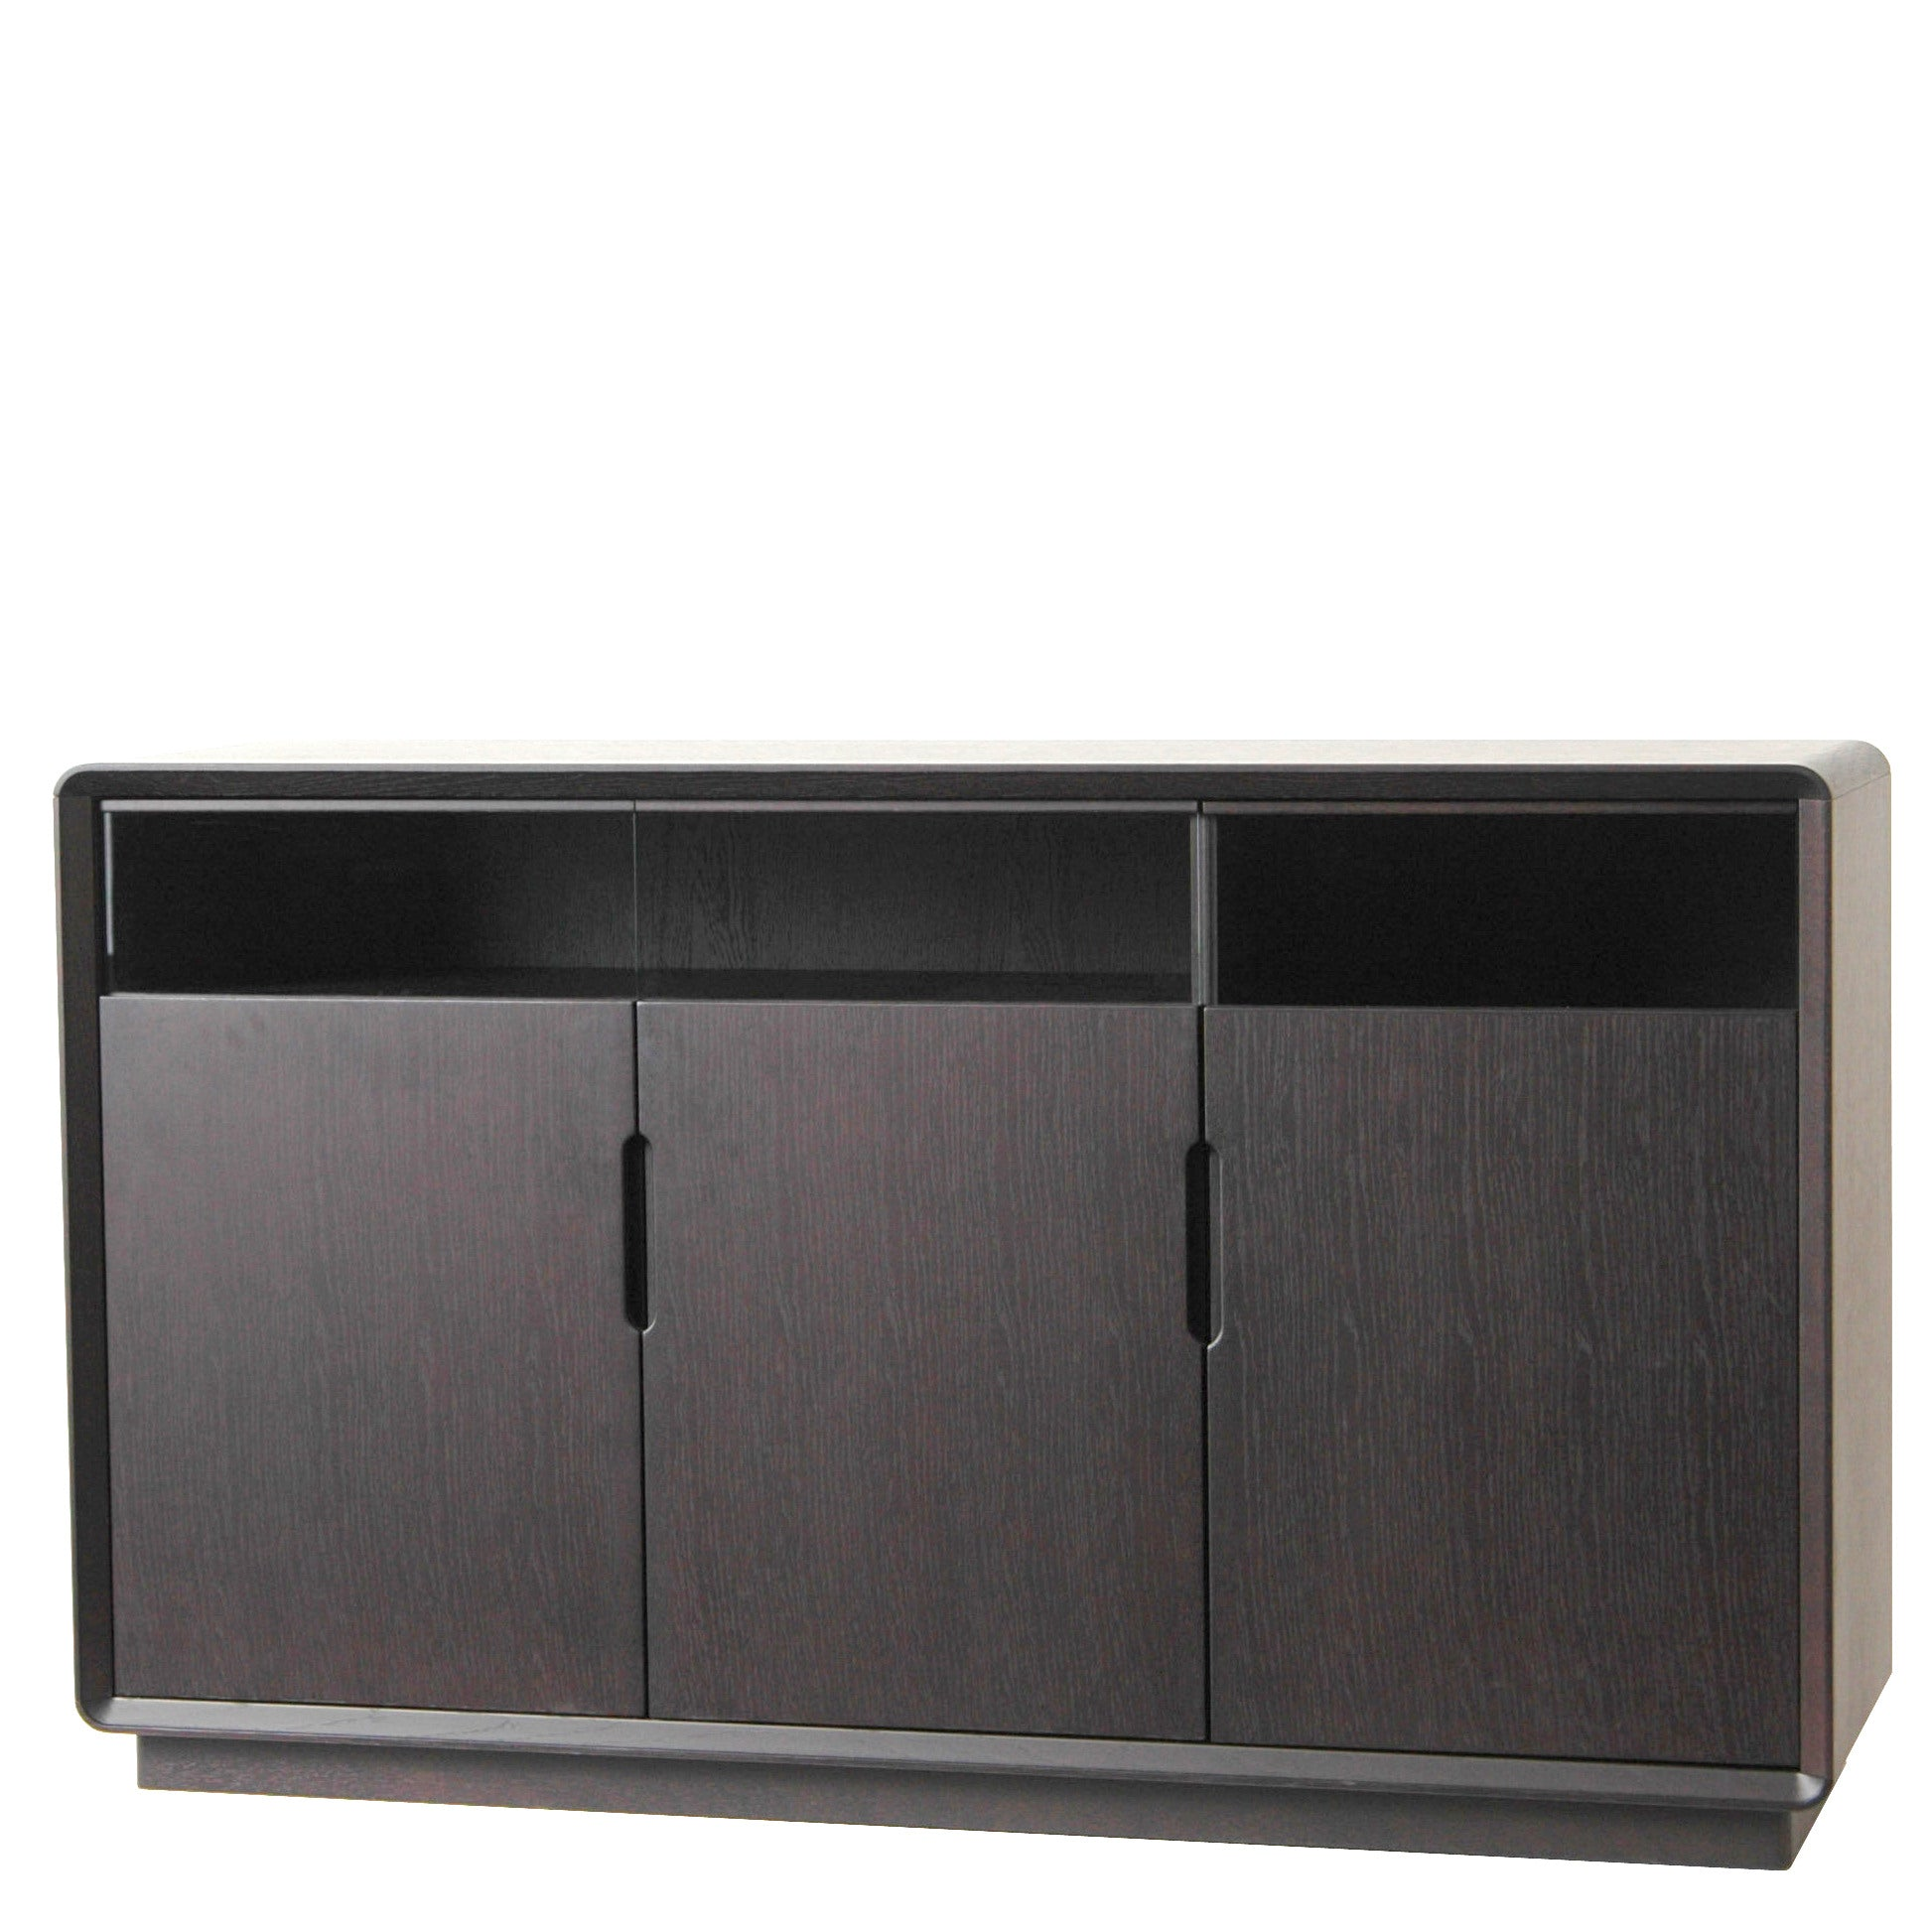 Nissin - ACCENT Sideboard Three Doors